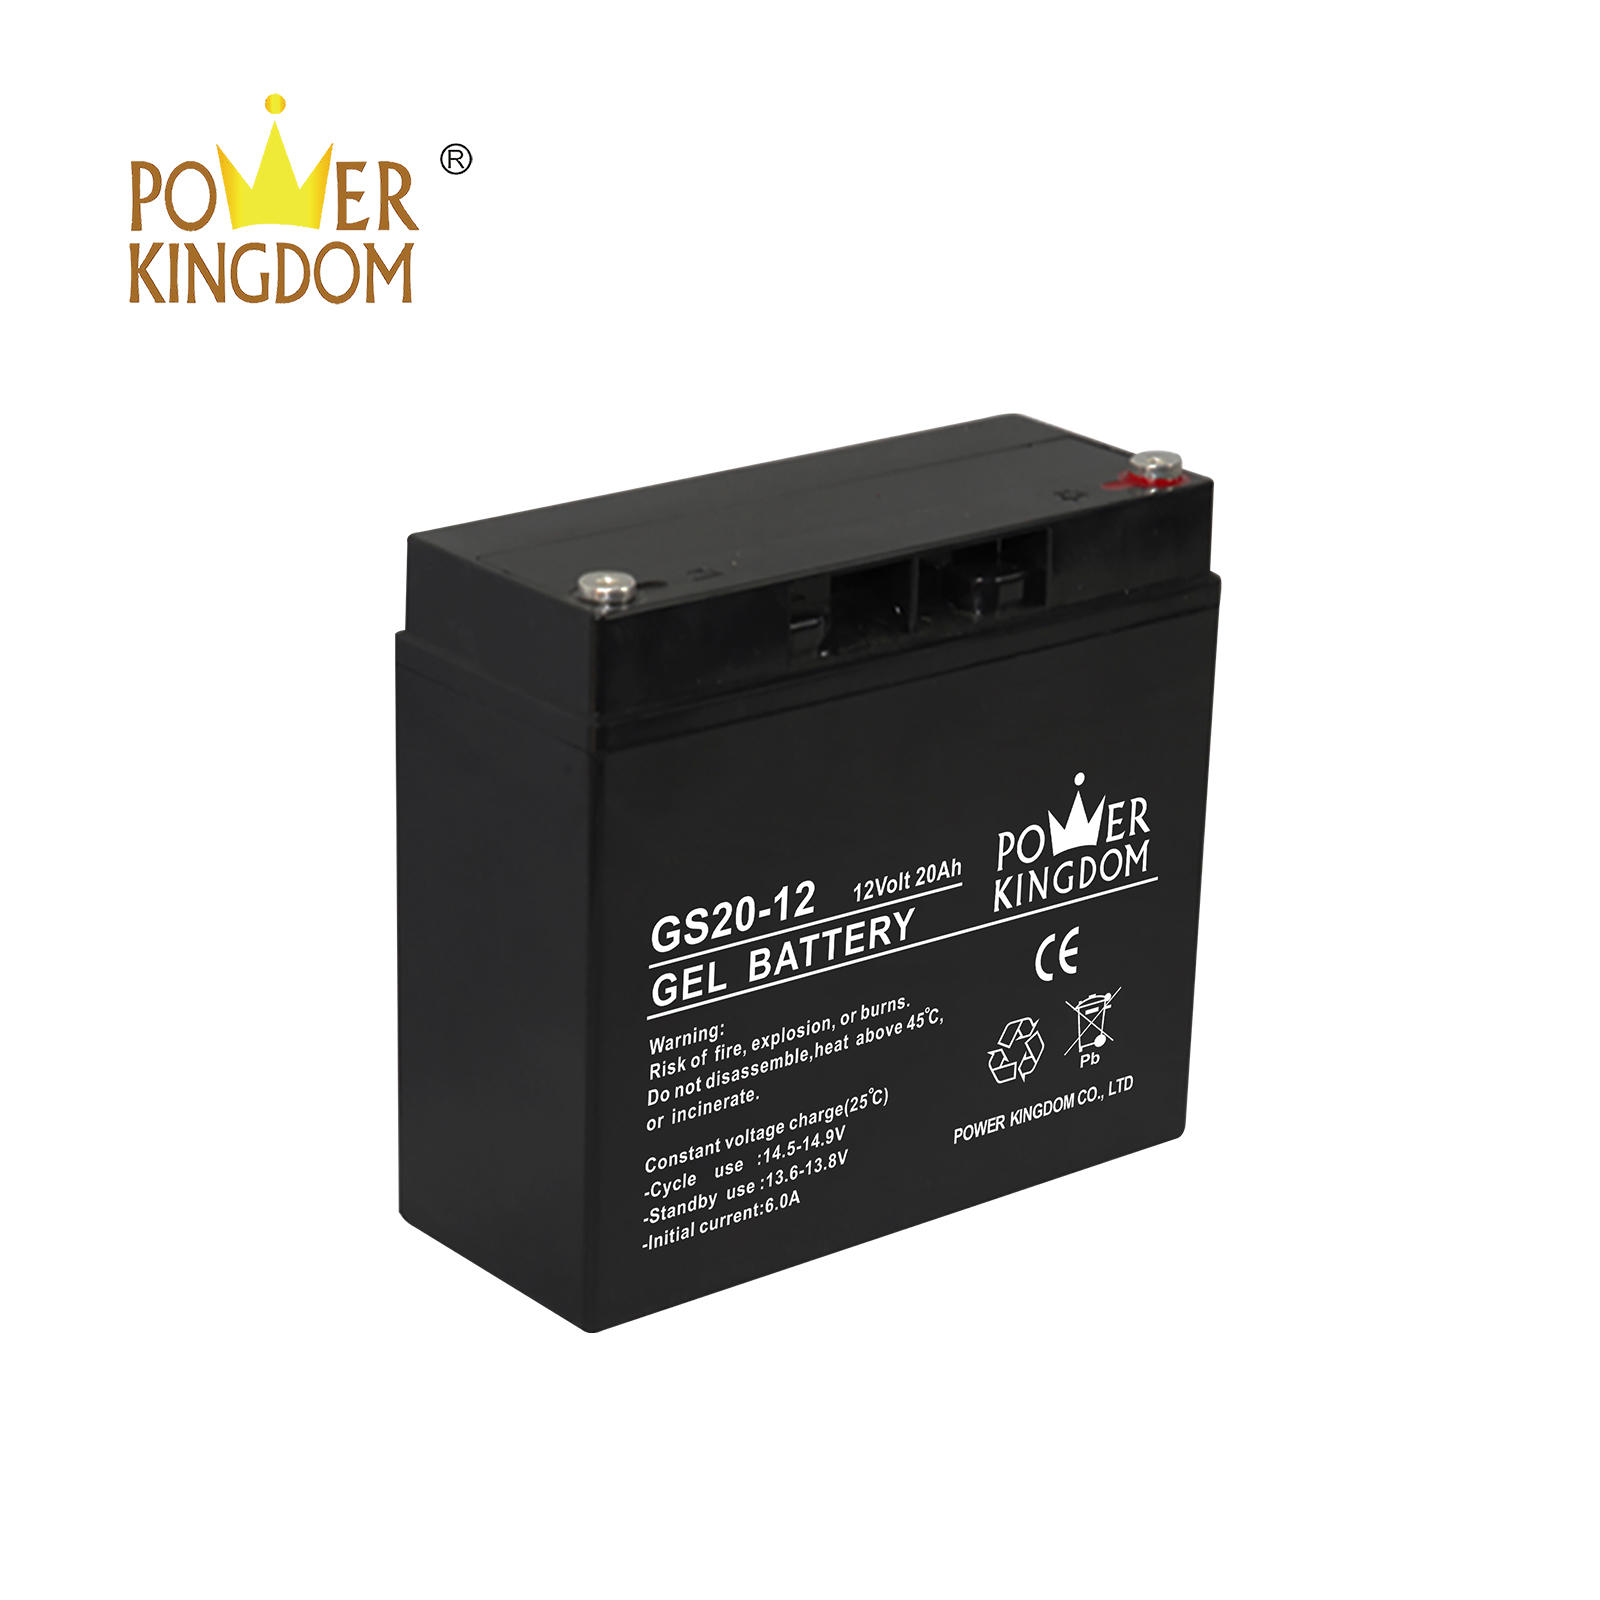 GEL series battery 12v 20ah rechargeable lead acid battery